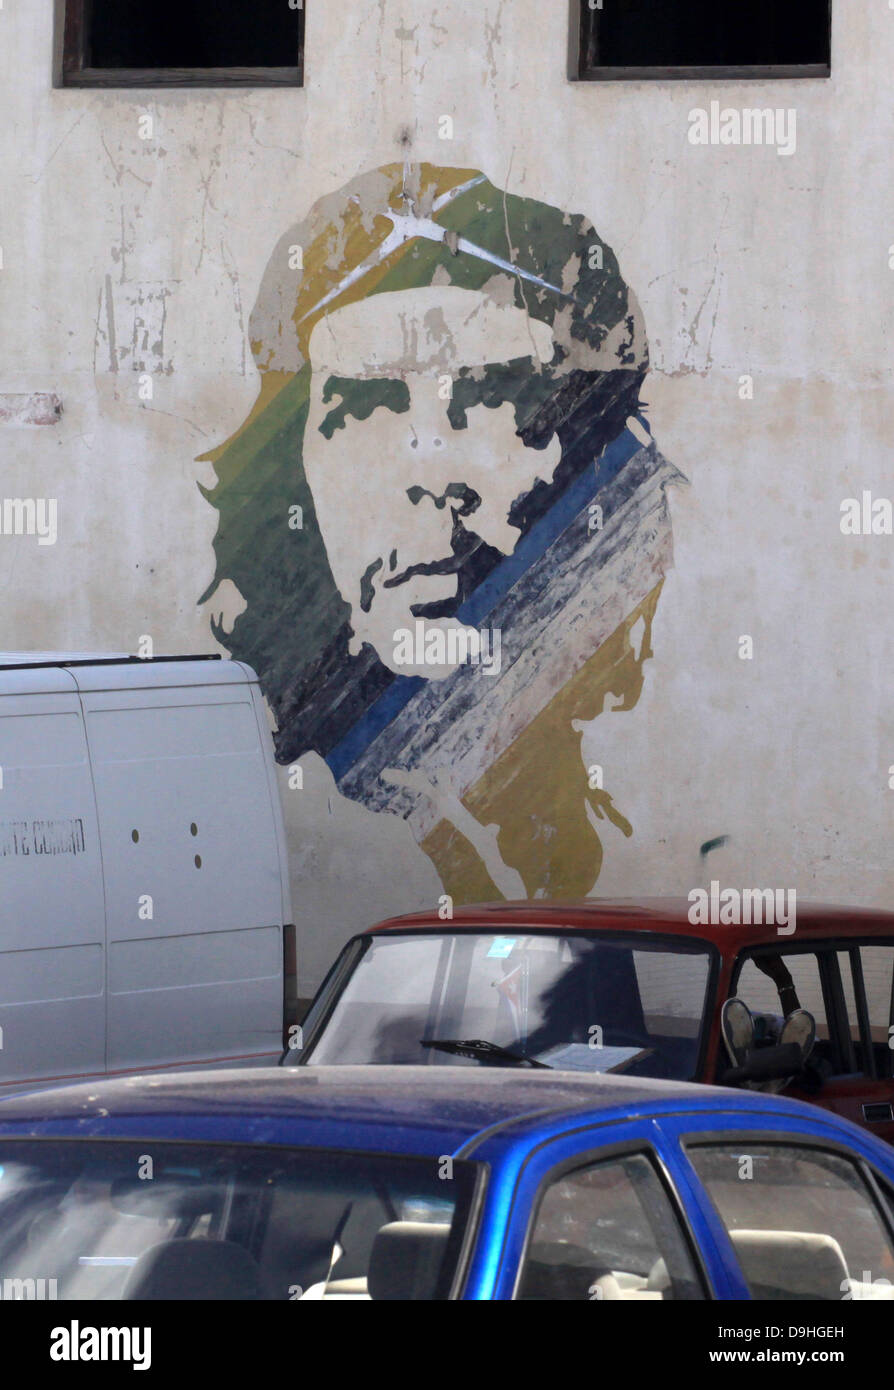 A graffito of the revered revolutionary leader Che Guevara is on display on a derilict wall in the city centre of - Stock Image